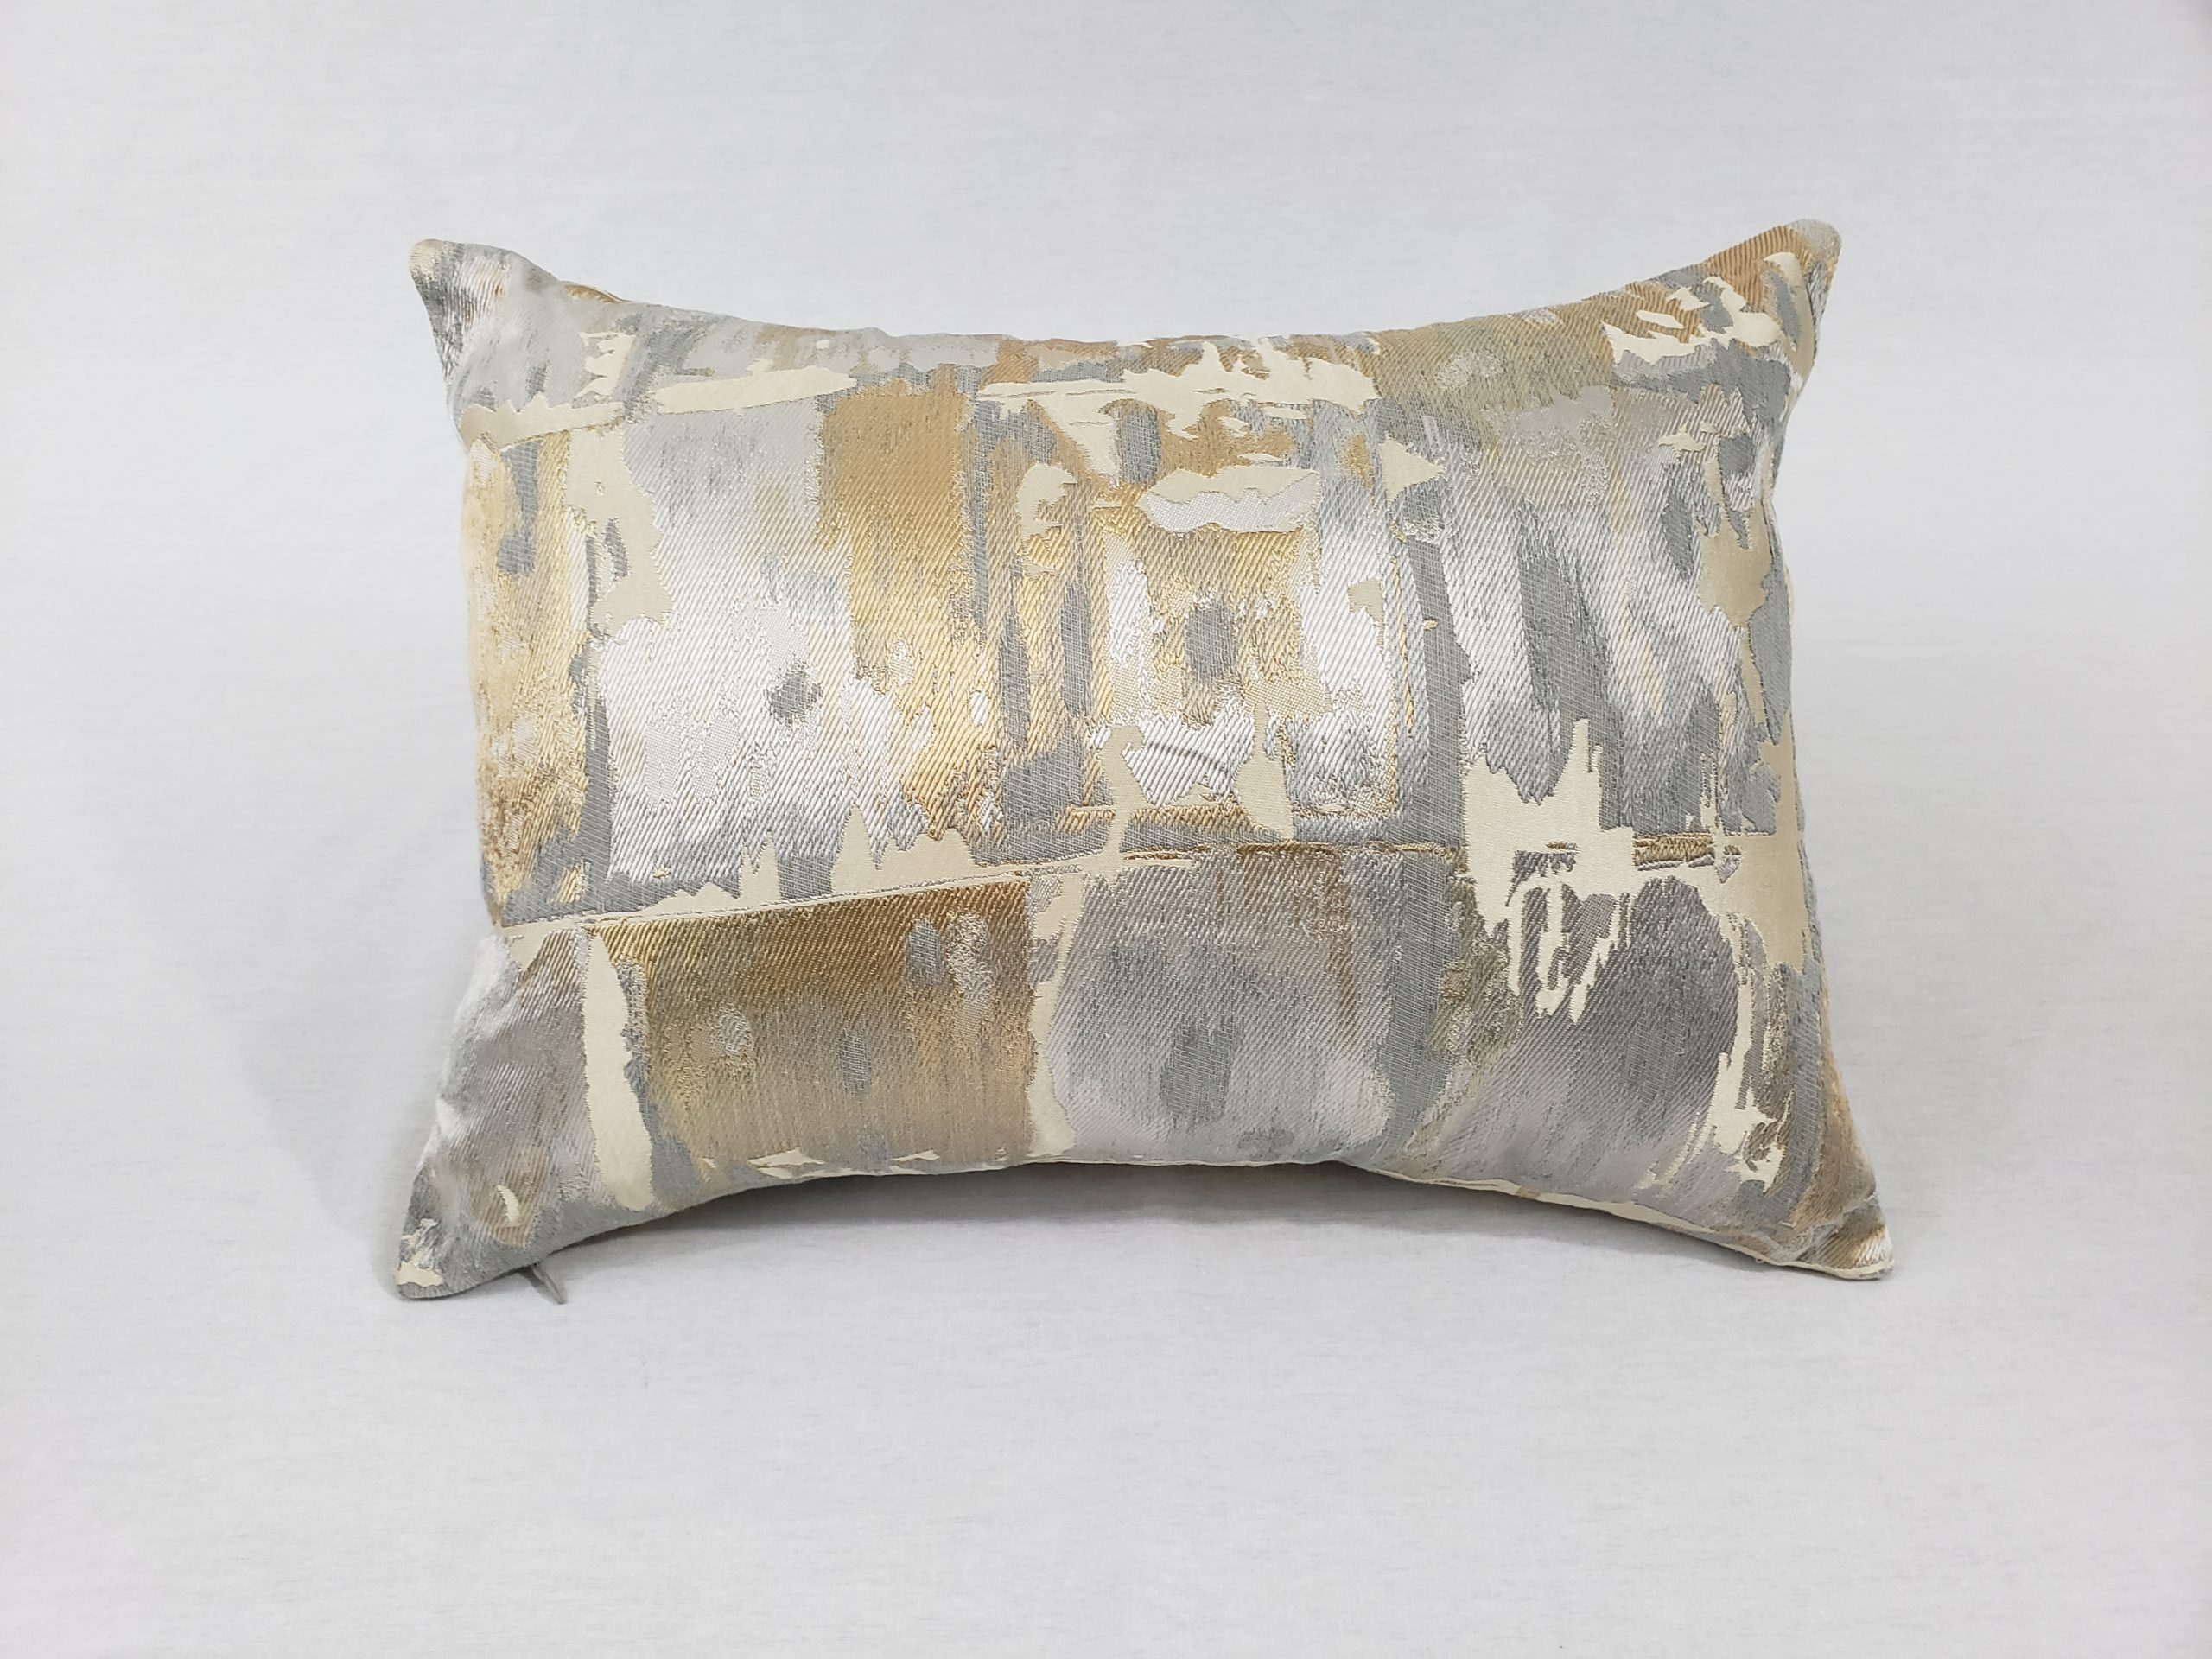 silver and gold cushion used as product image